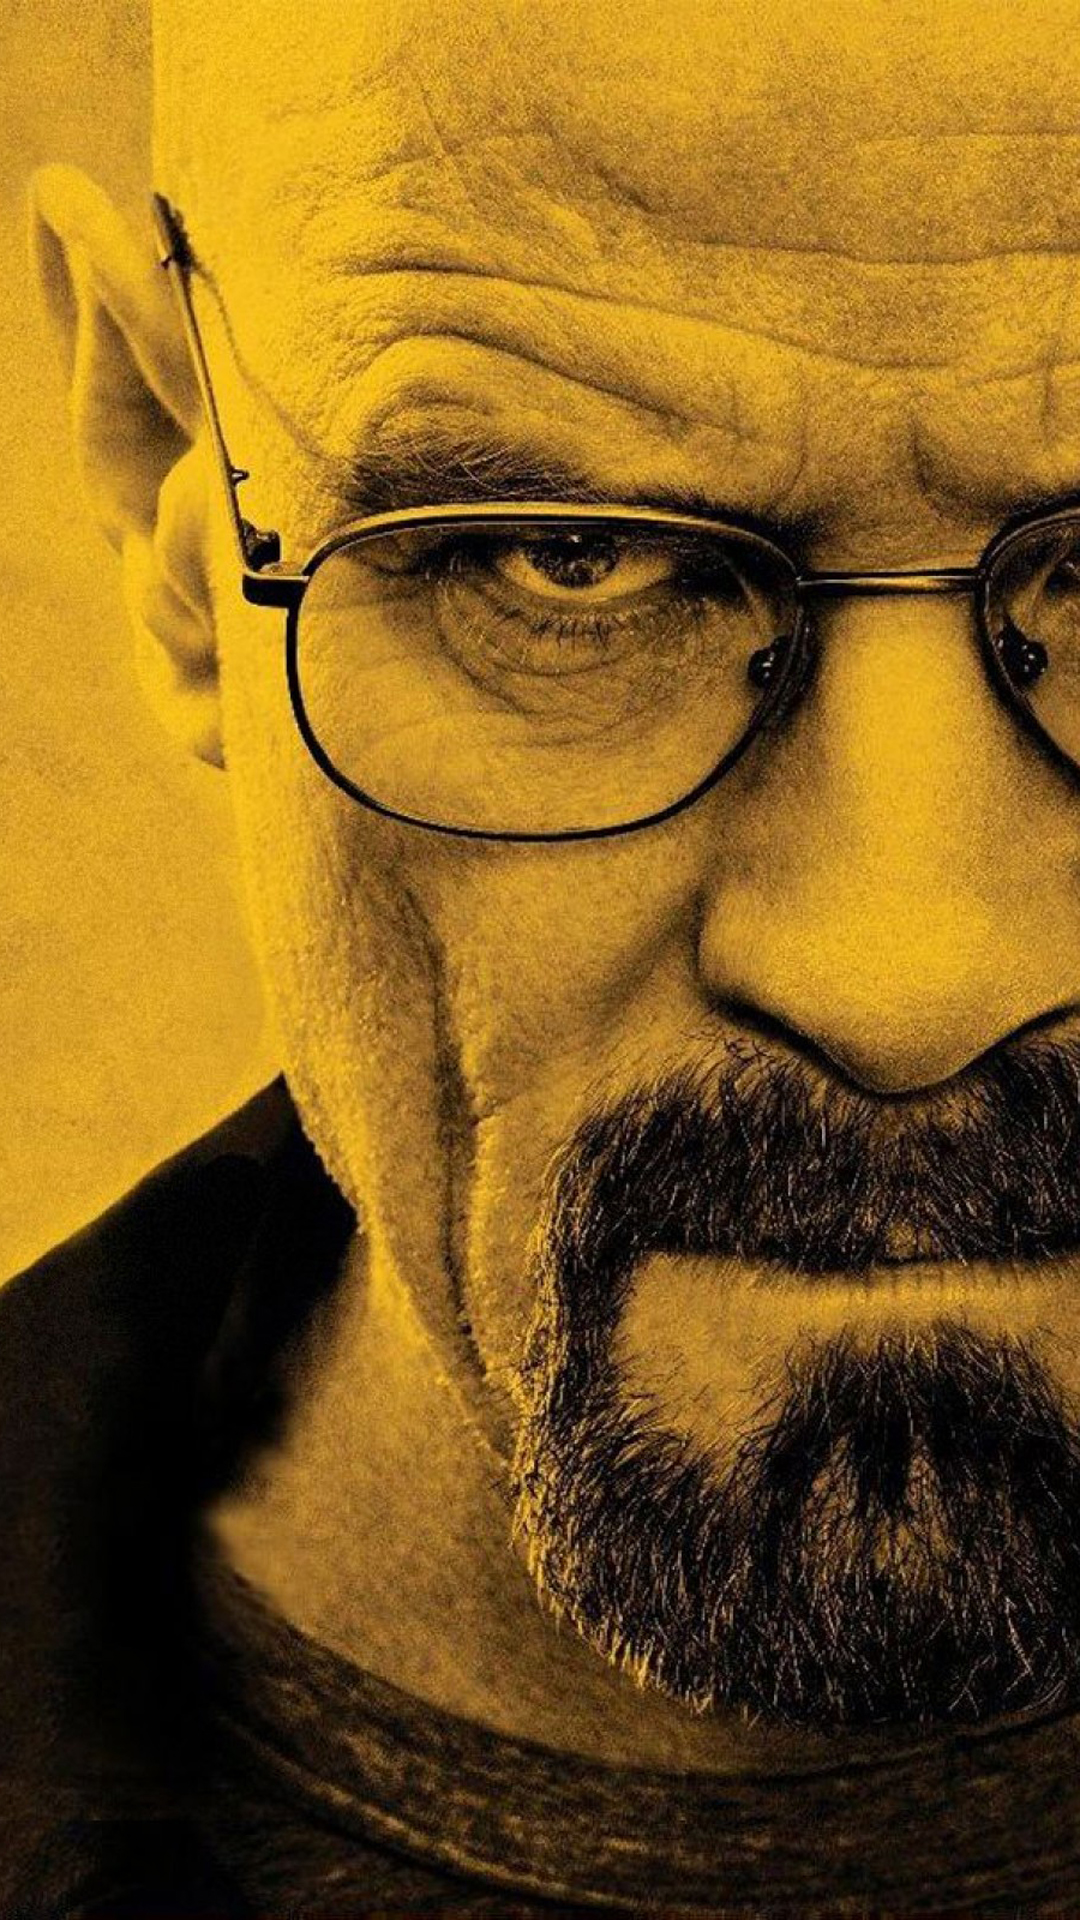 Breaking bad HTC hd wallpaper